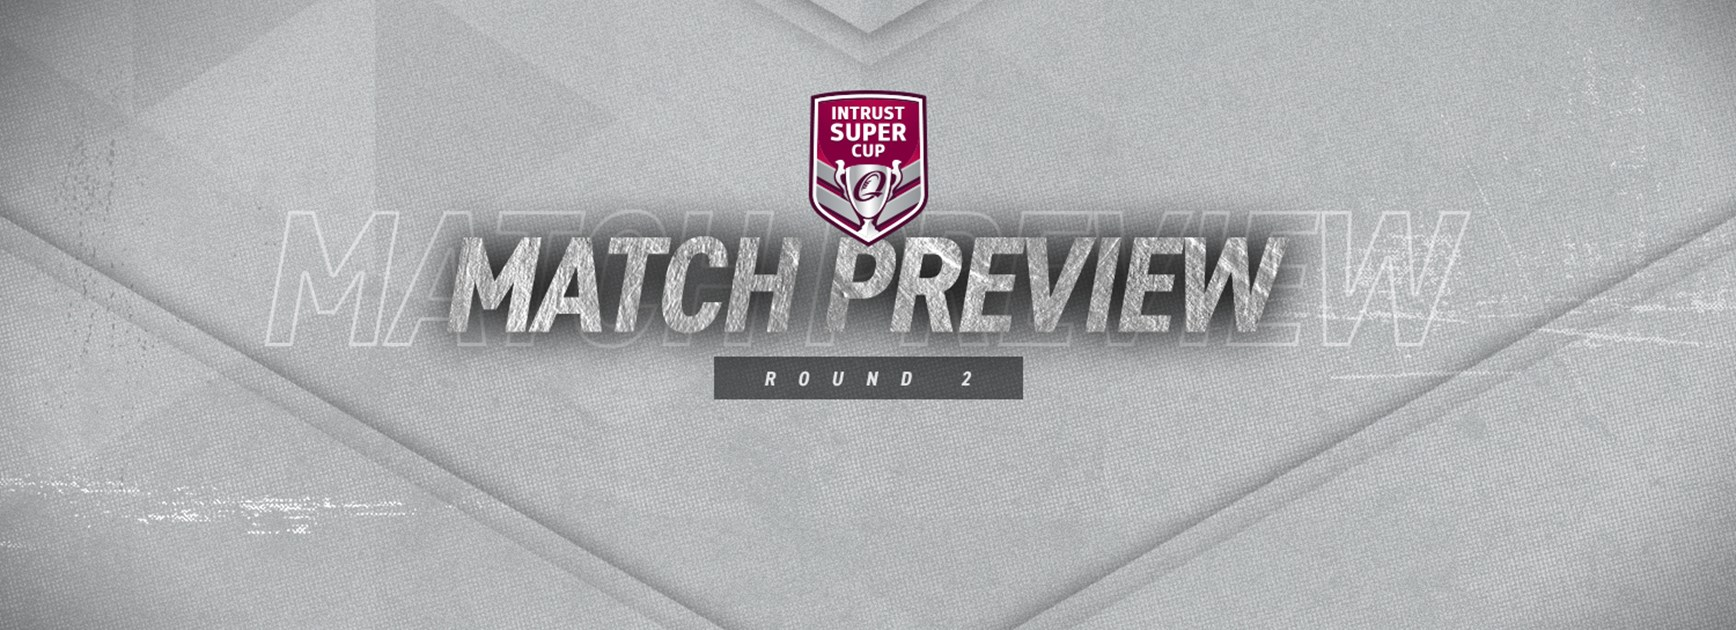 Round 2 Intrust Super Cup preview